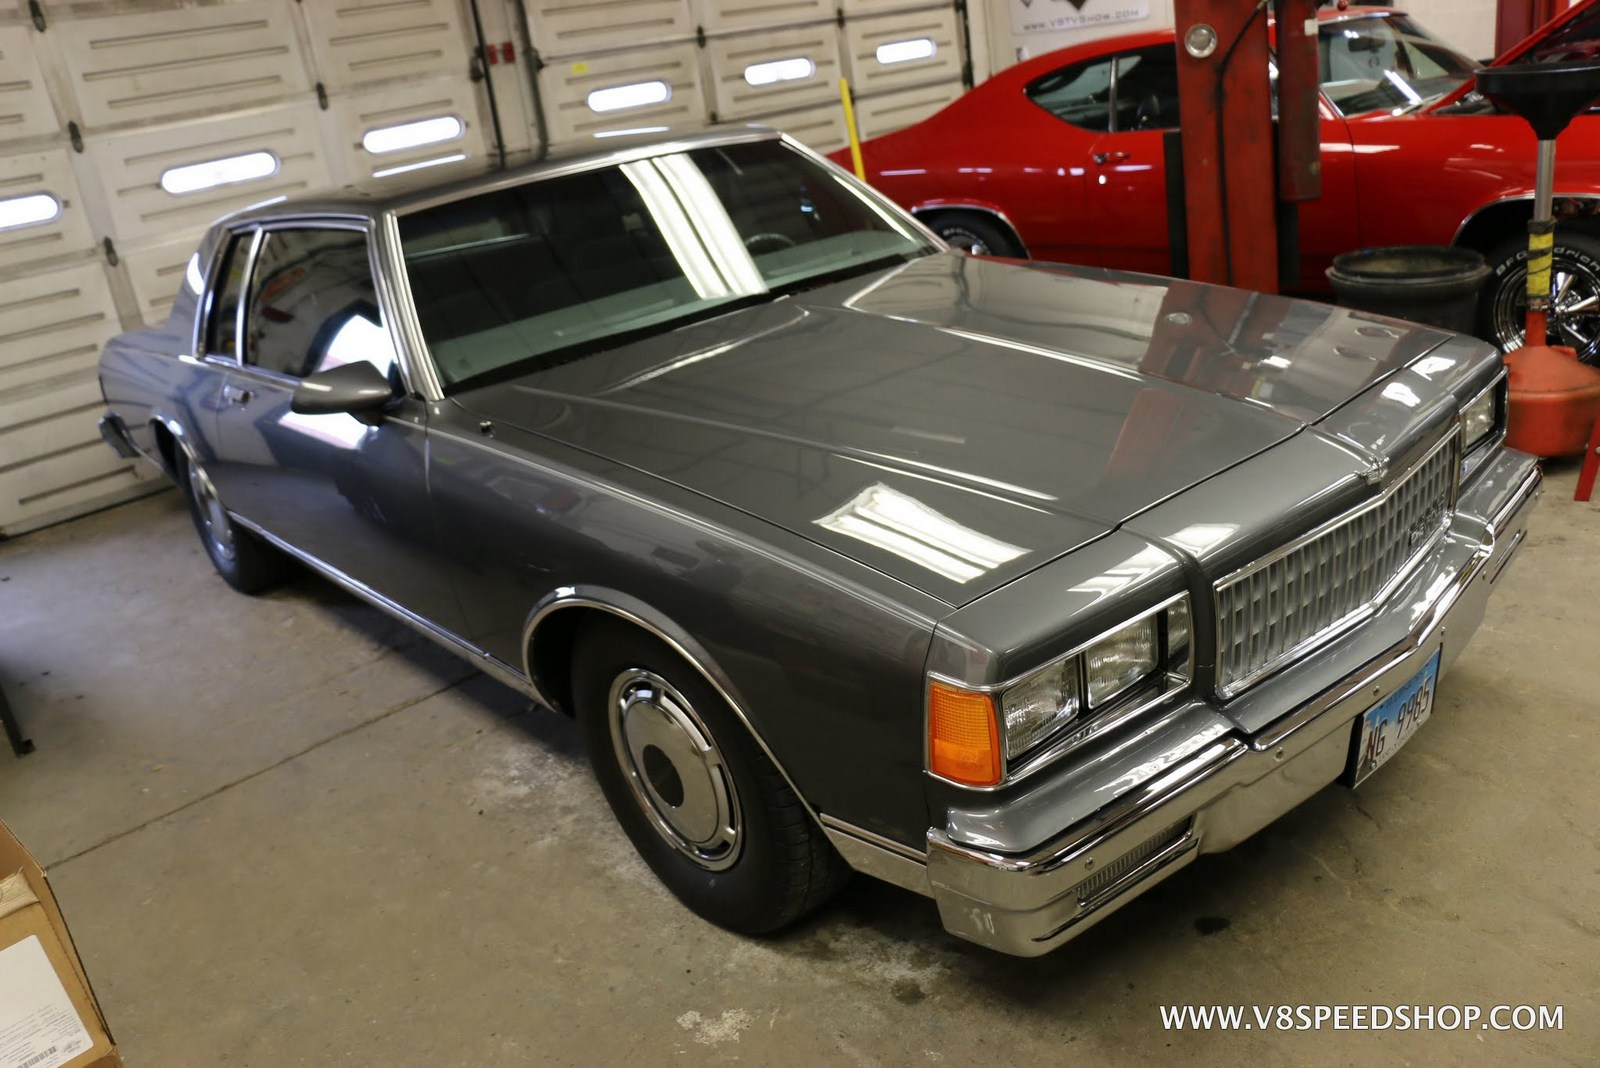 1986 Chevrolet Caprice Restoration At V8 Speed & Resto Shop